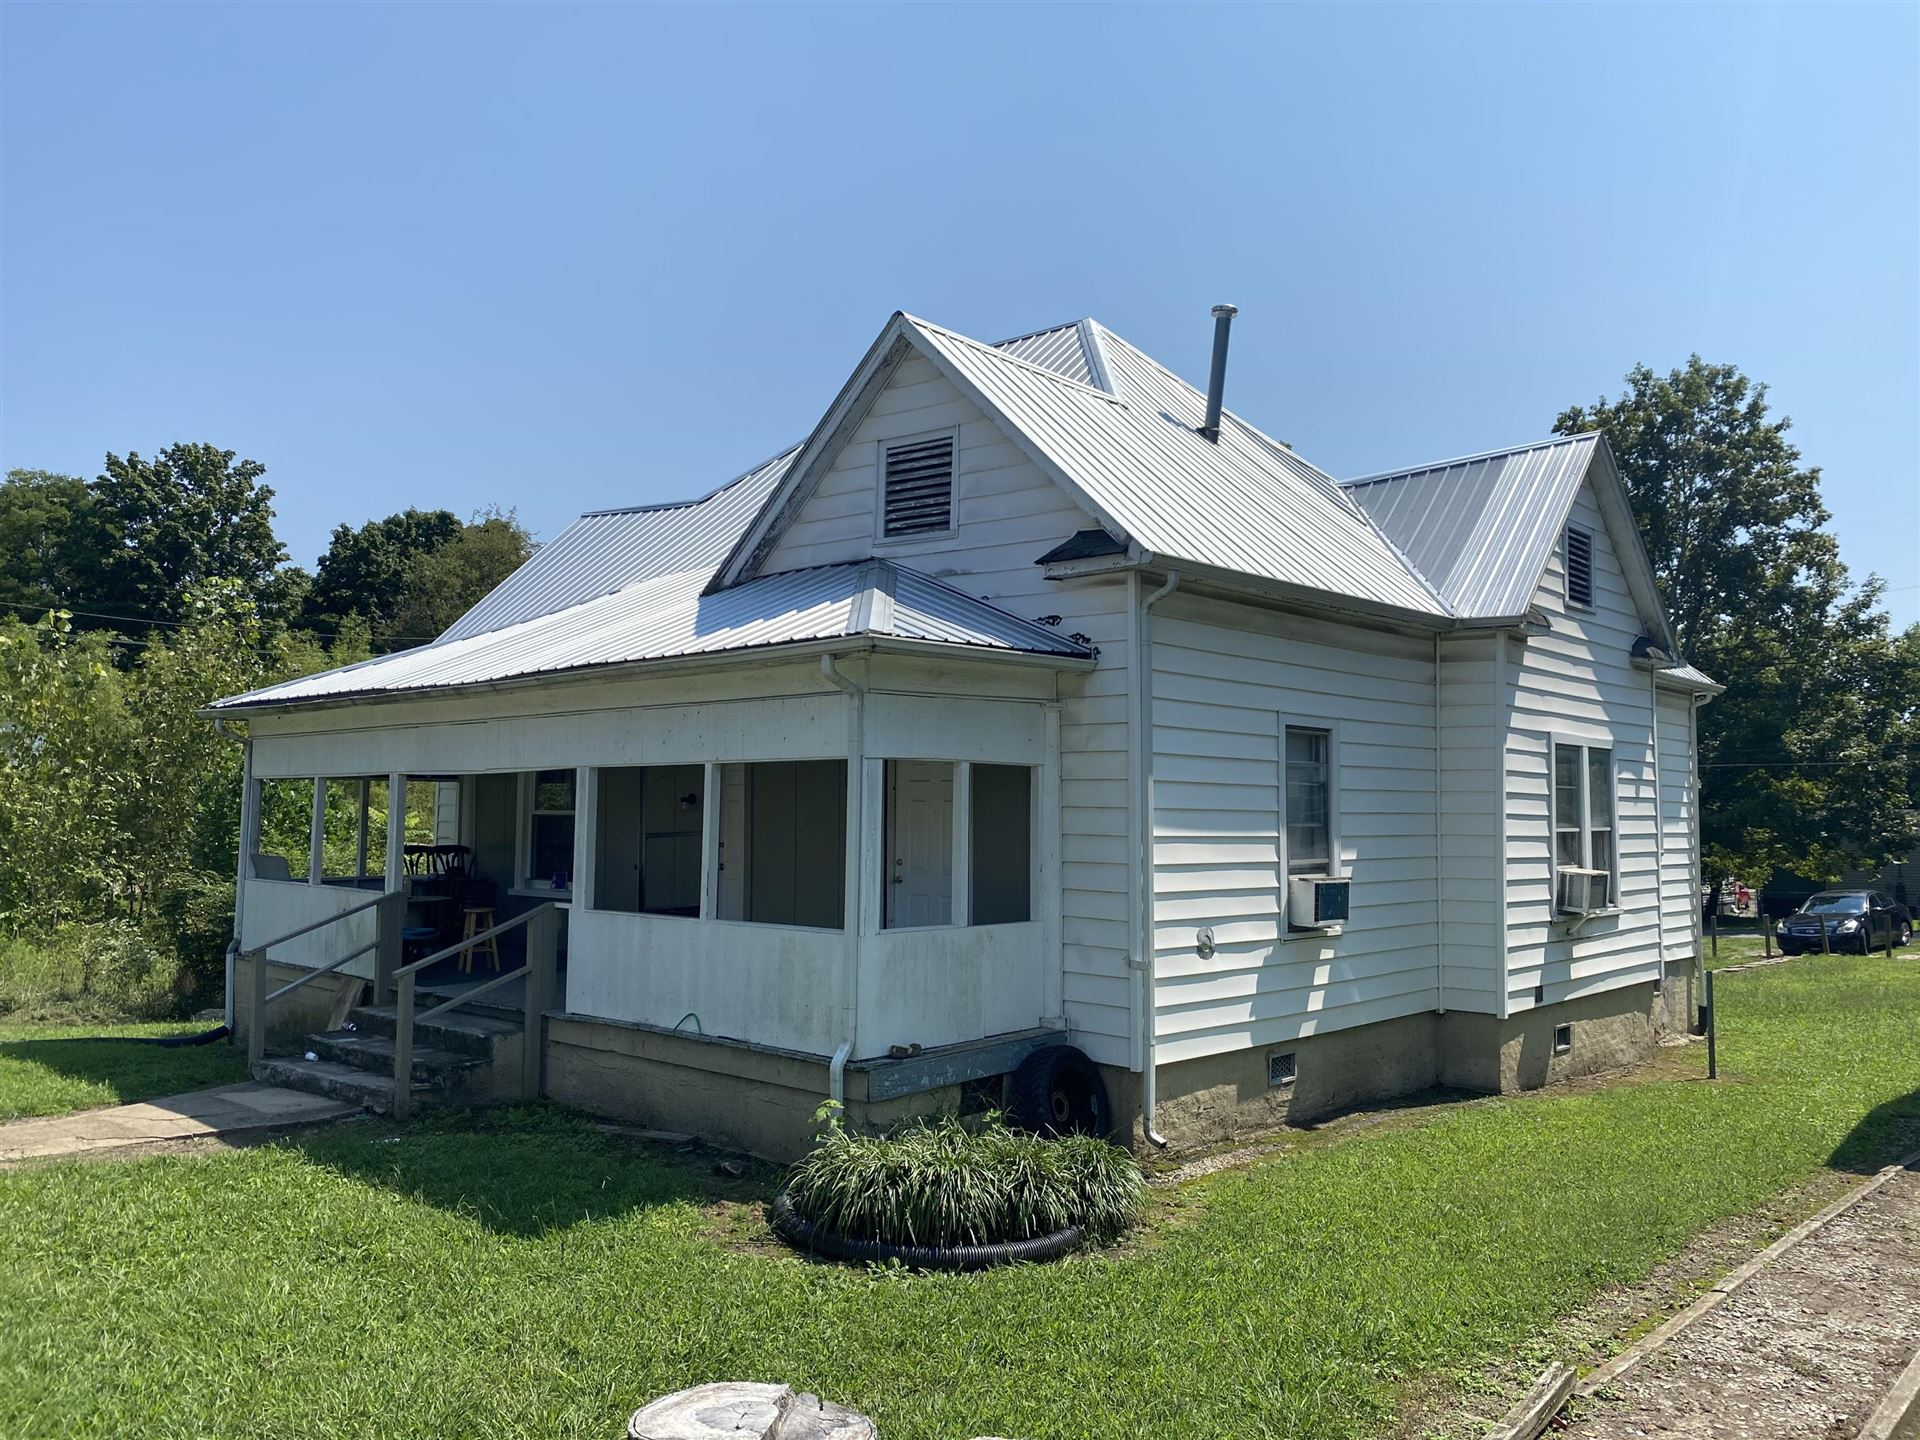 Photo of 620 Banks Ave, Knoxville, TN 37917 (MLS # 1140114)